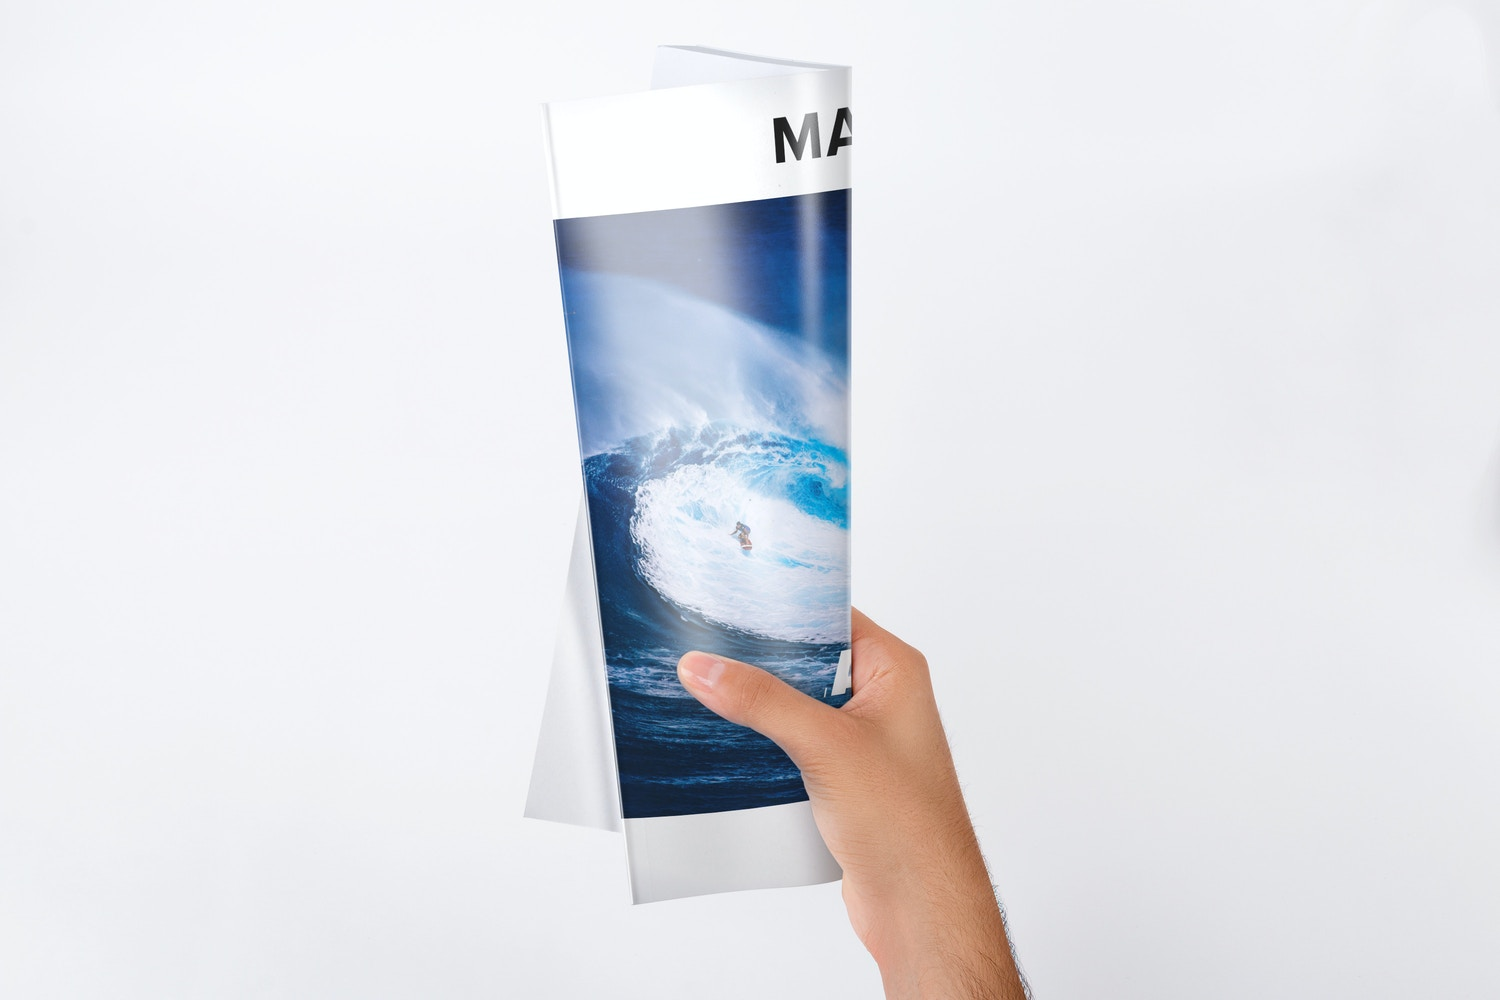 Holding A4 Magazine Rolled Mockup by Original Mockups on Original Mockups